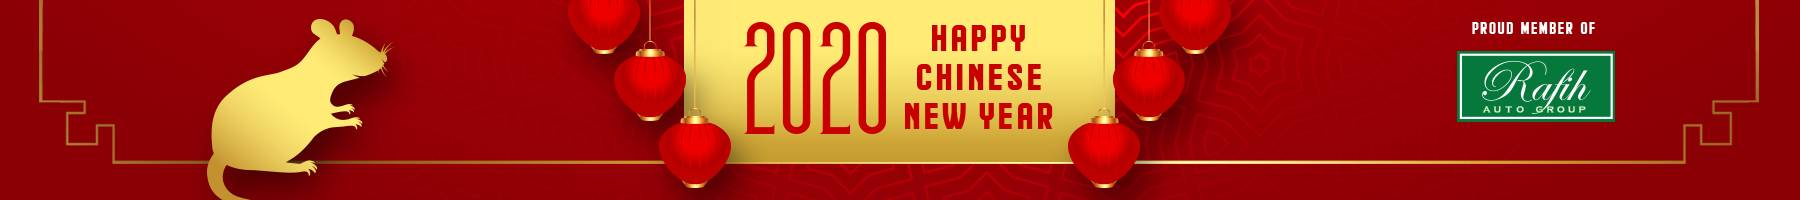 Happy Chinese New Year Banner- yellow and red banner